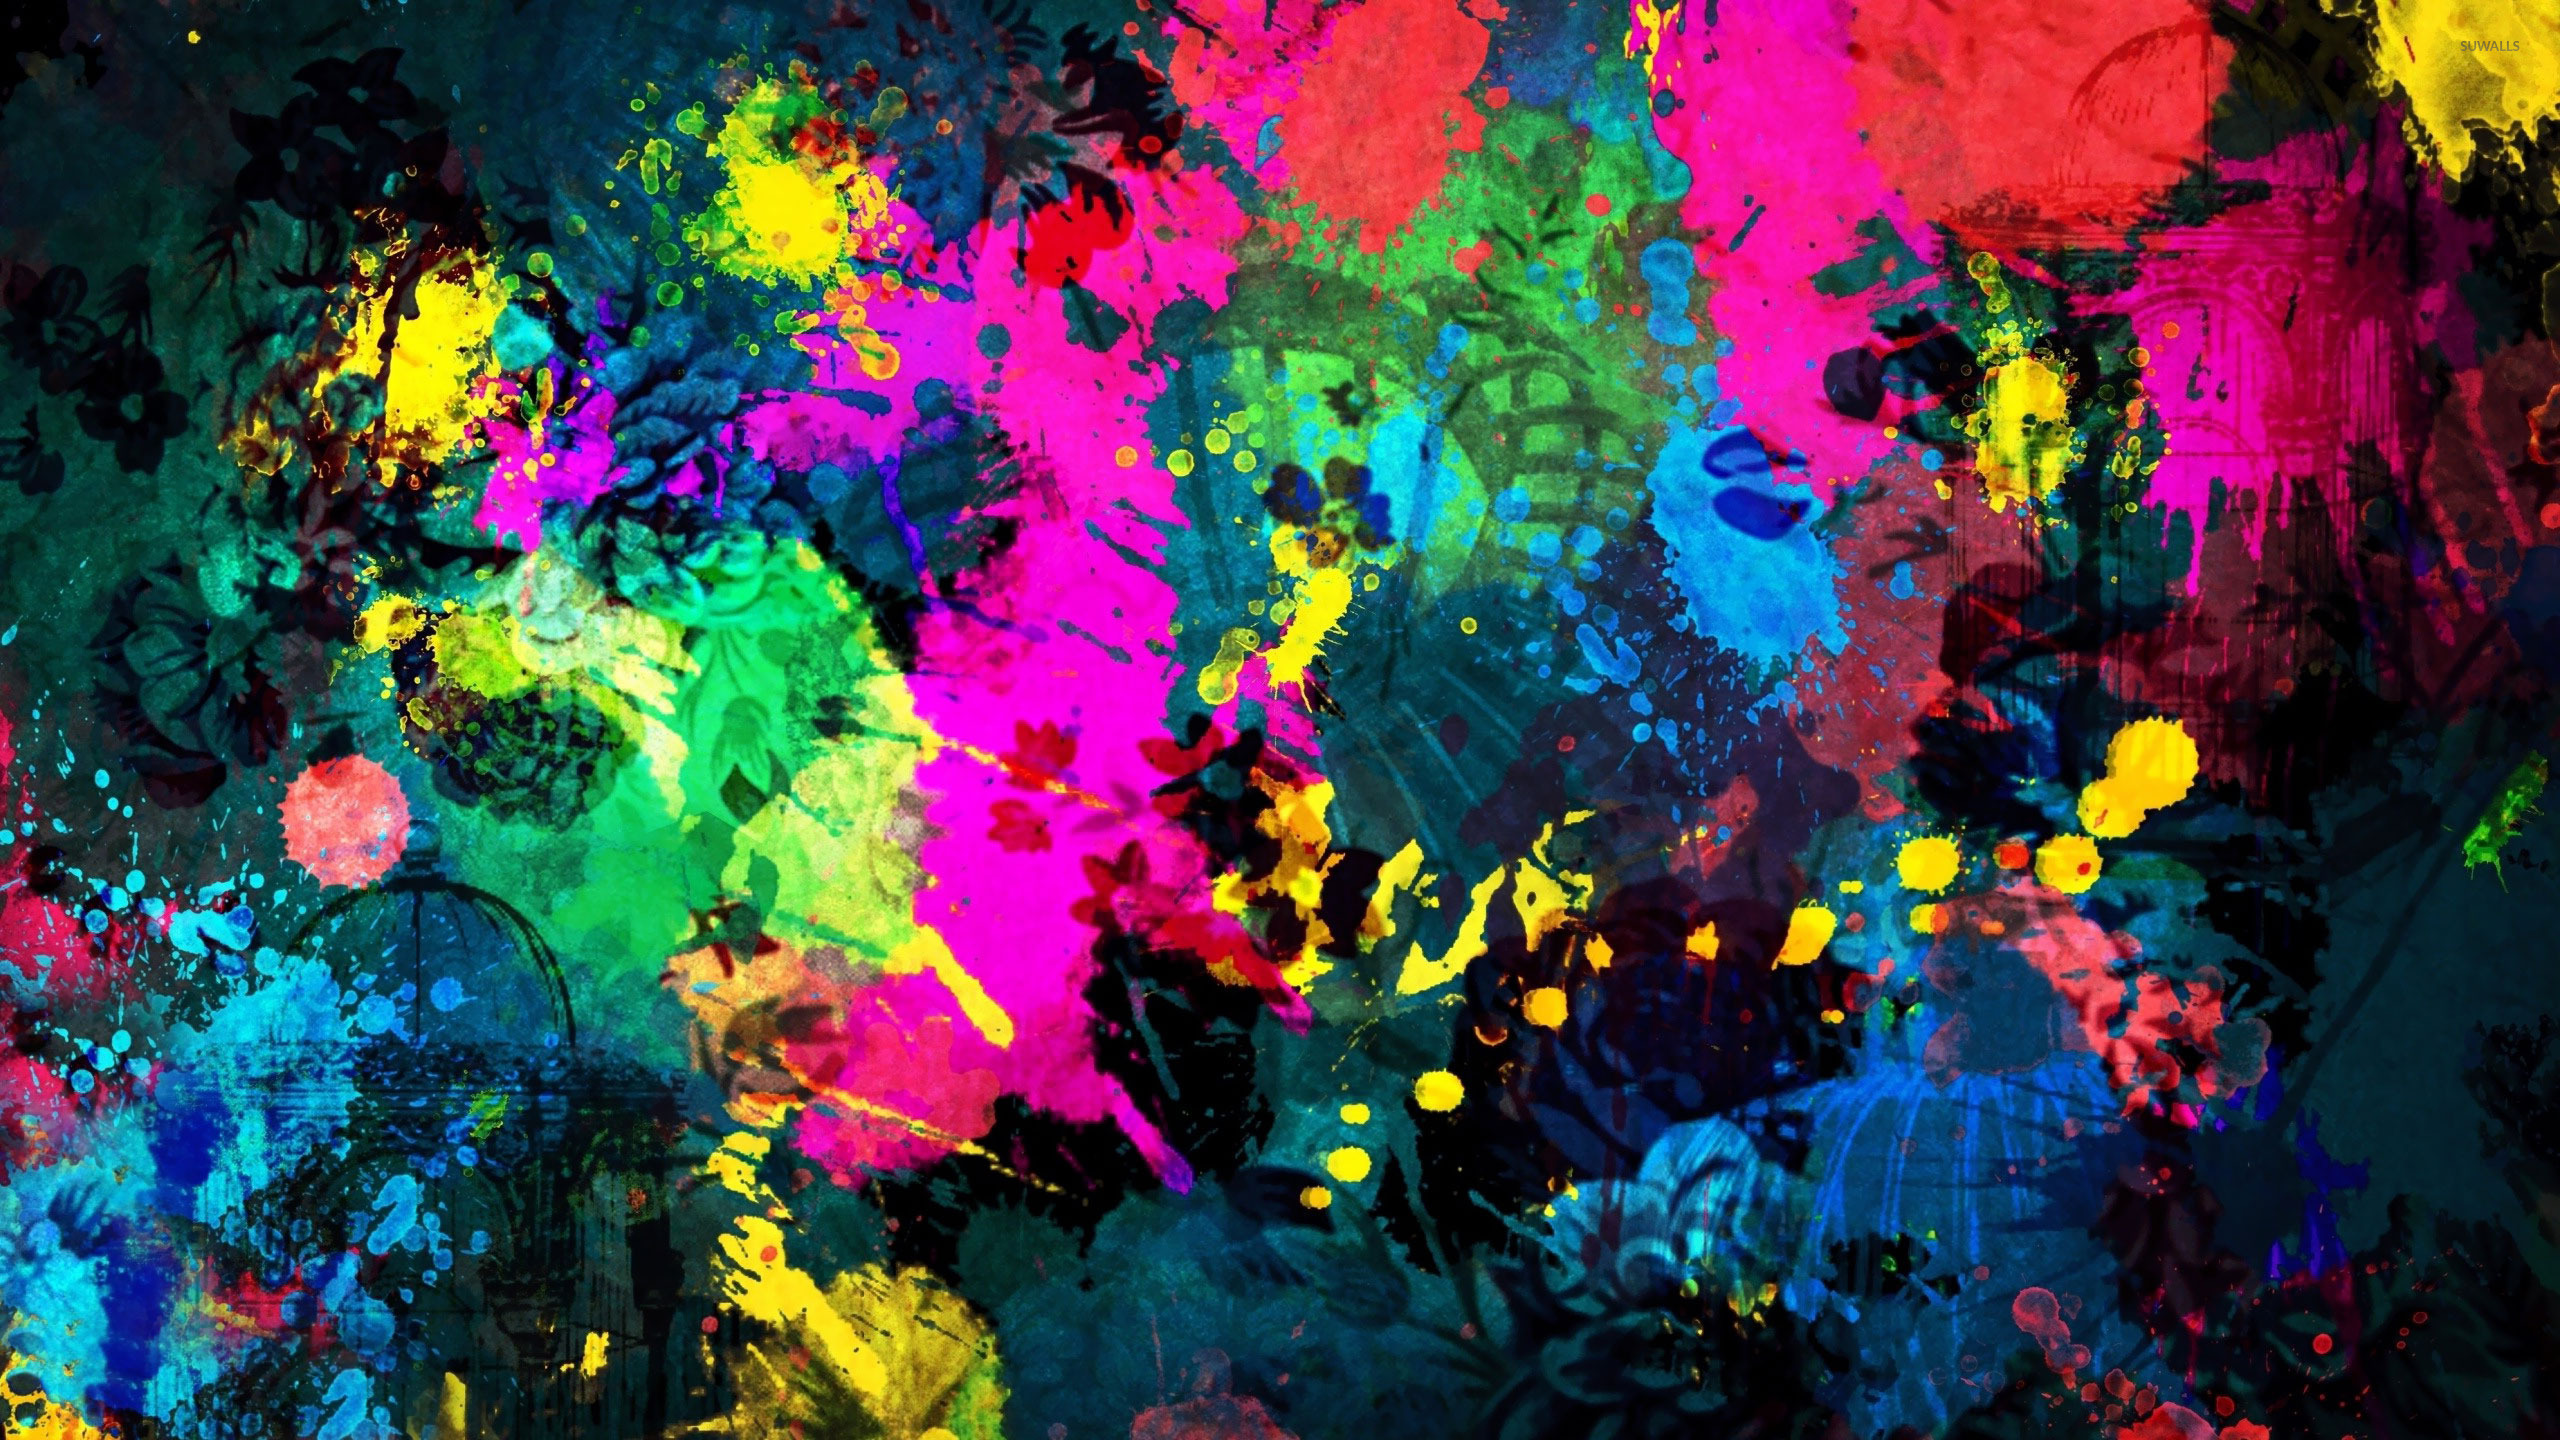 Colorful paint splatter wallpaper - Abstract wallpapers - #18695